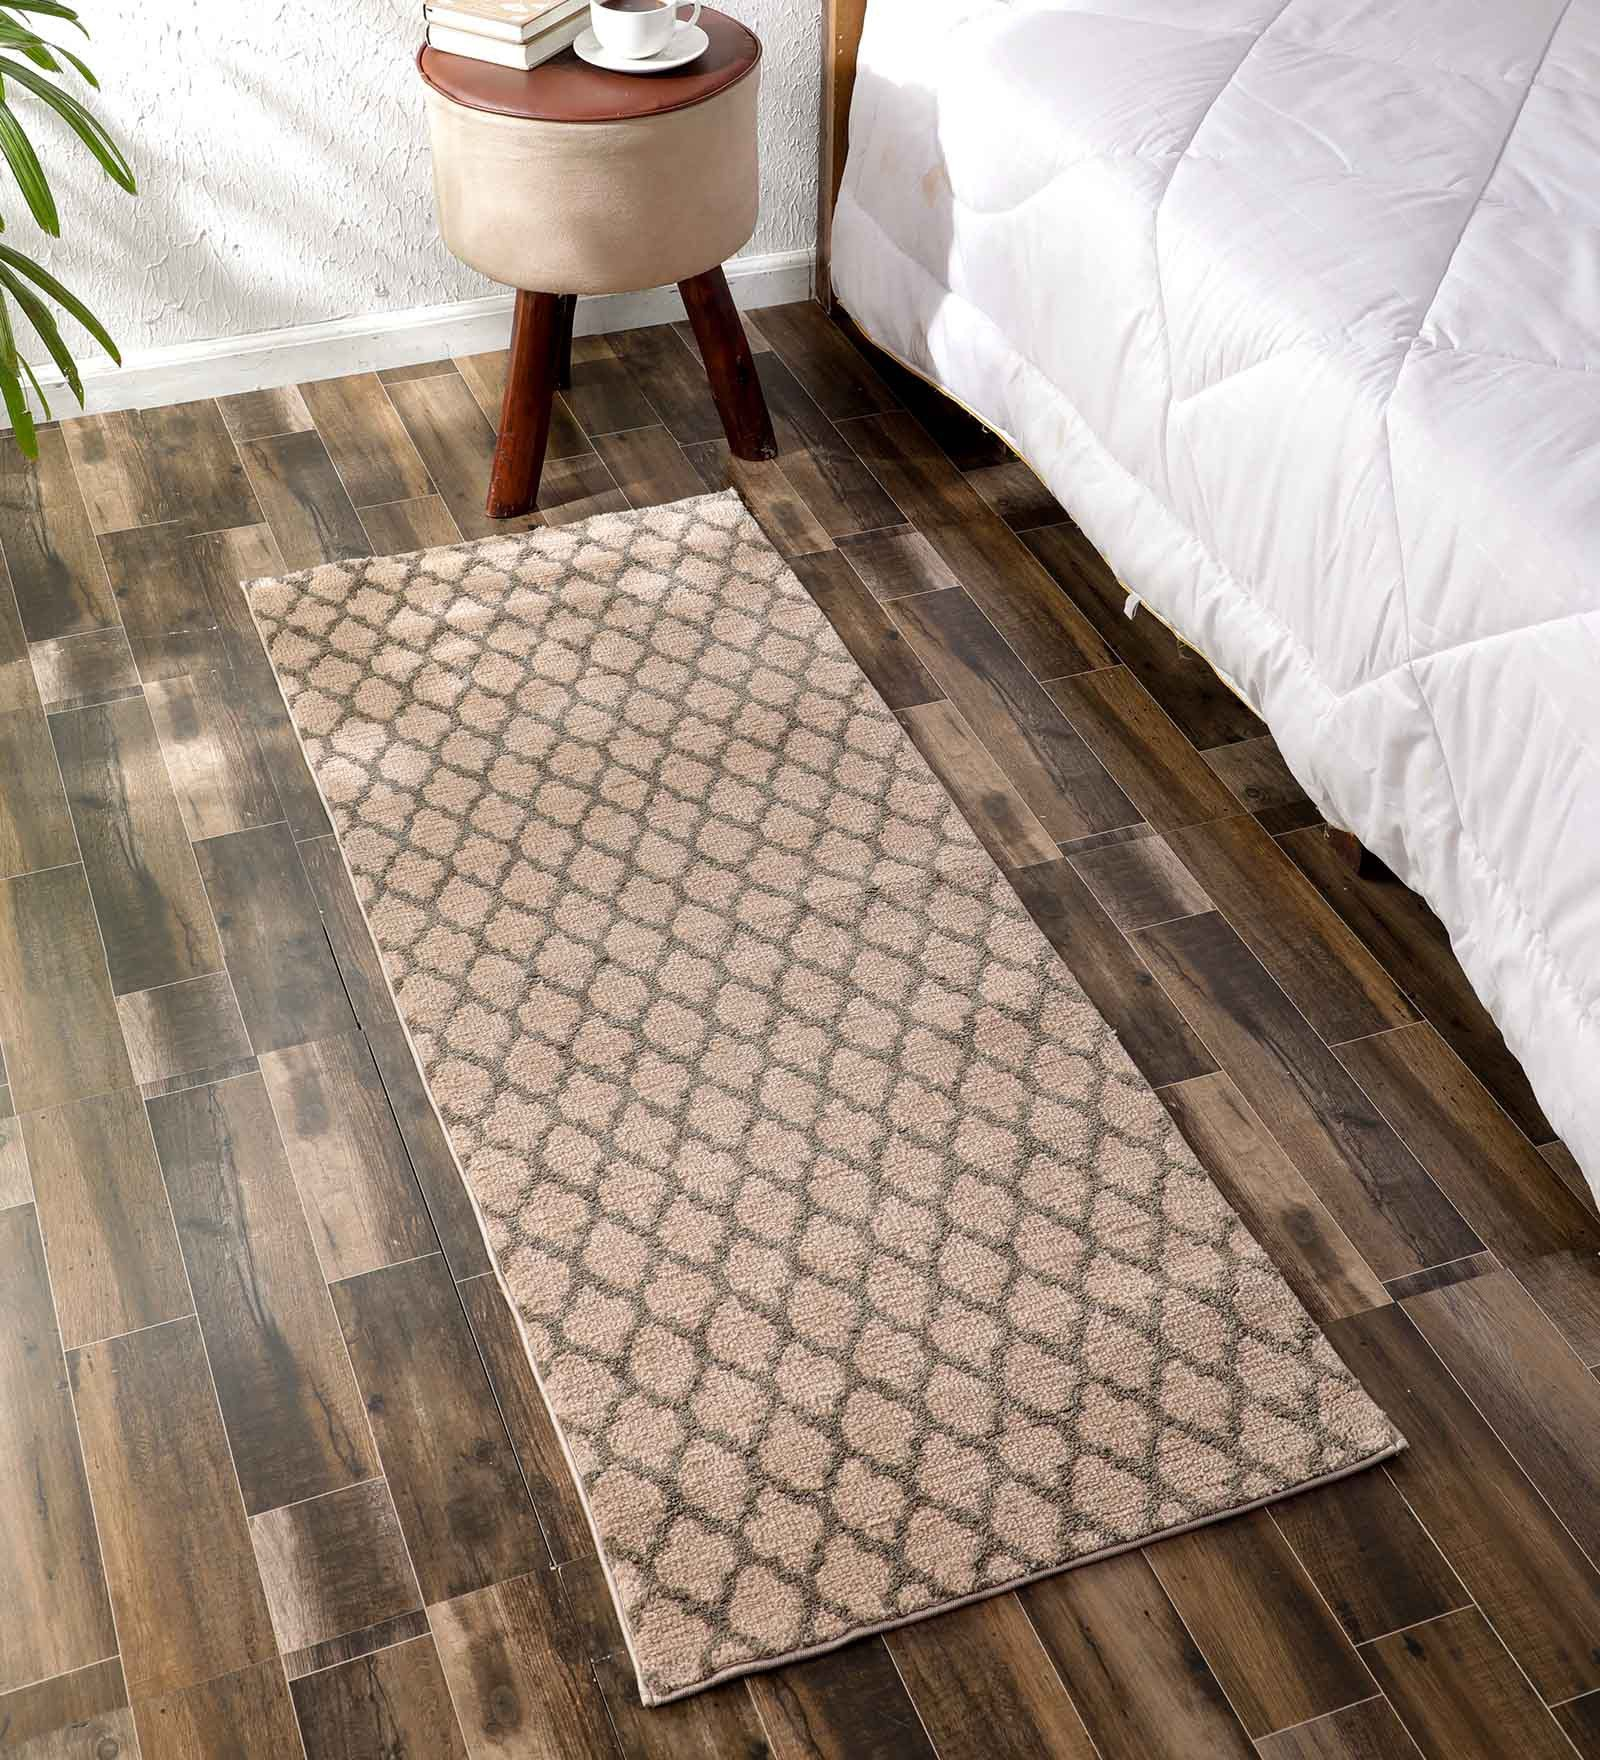 Flooring India Light Beige & Taupe Polyester Jewel Helix 24x60 Inch Anti Skit Runner